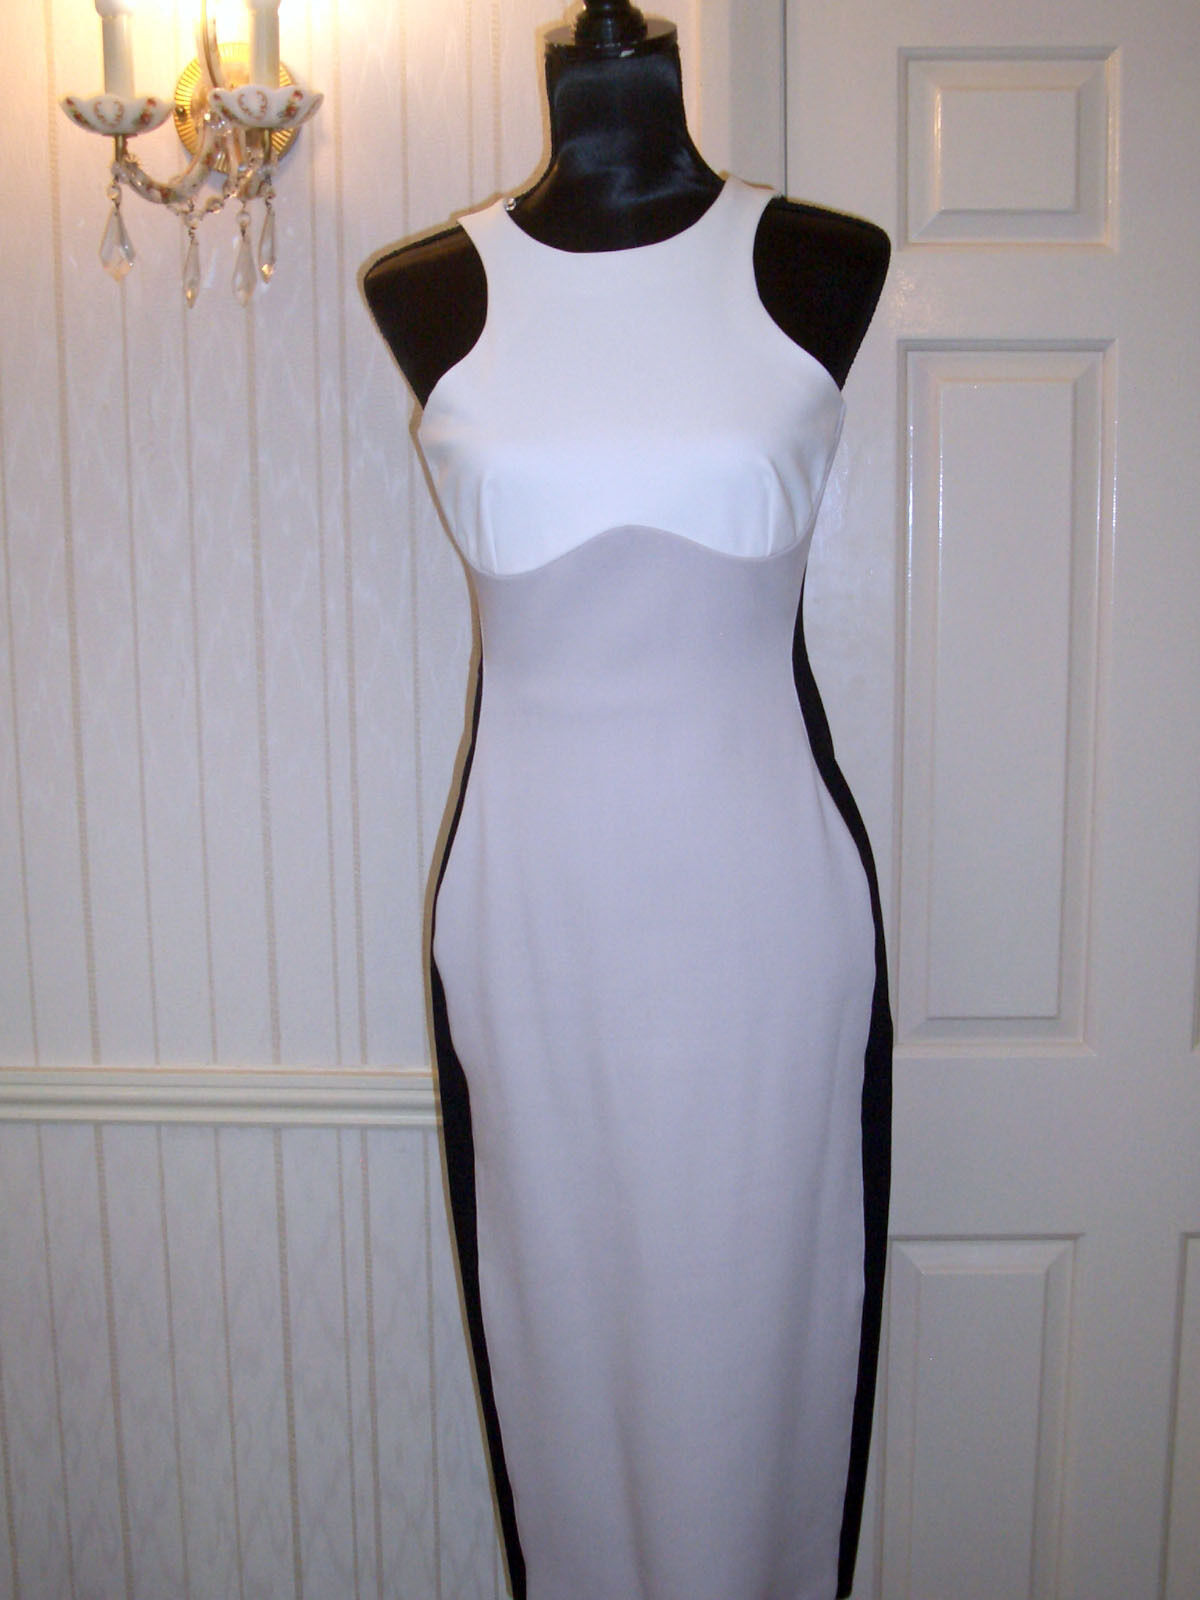 d23c300447 McCartney Iconic Bodycon Dress in Good Condition Size 42 () Very Stella  oxrkxg4267-Dresses